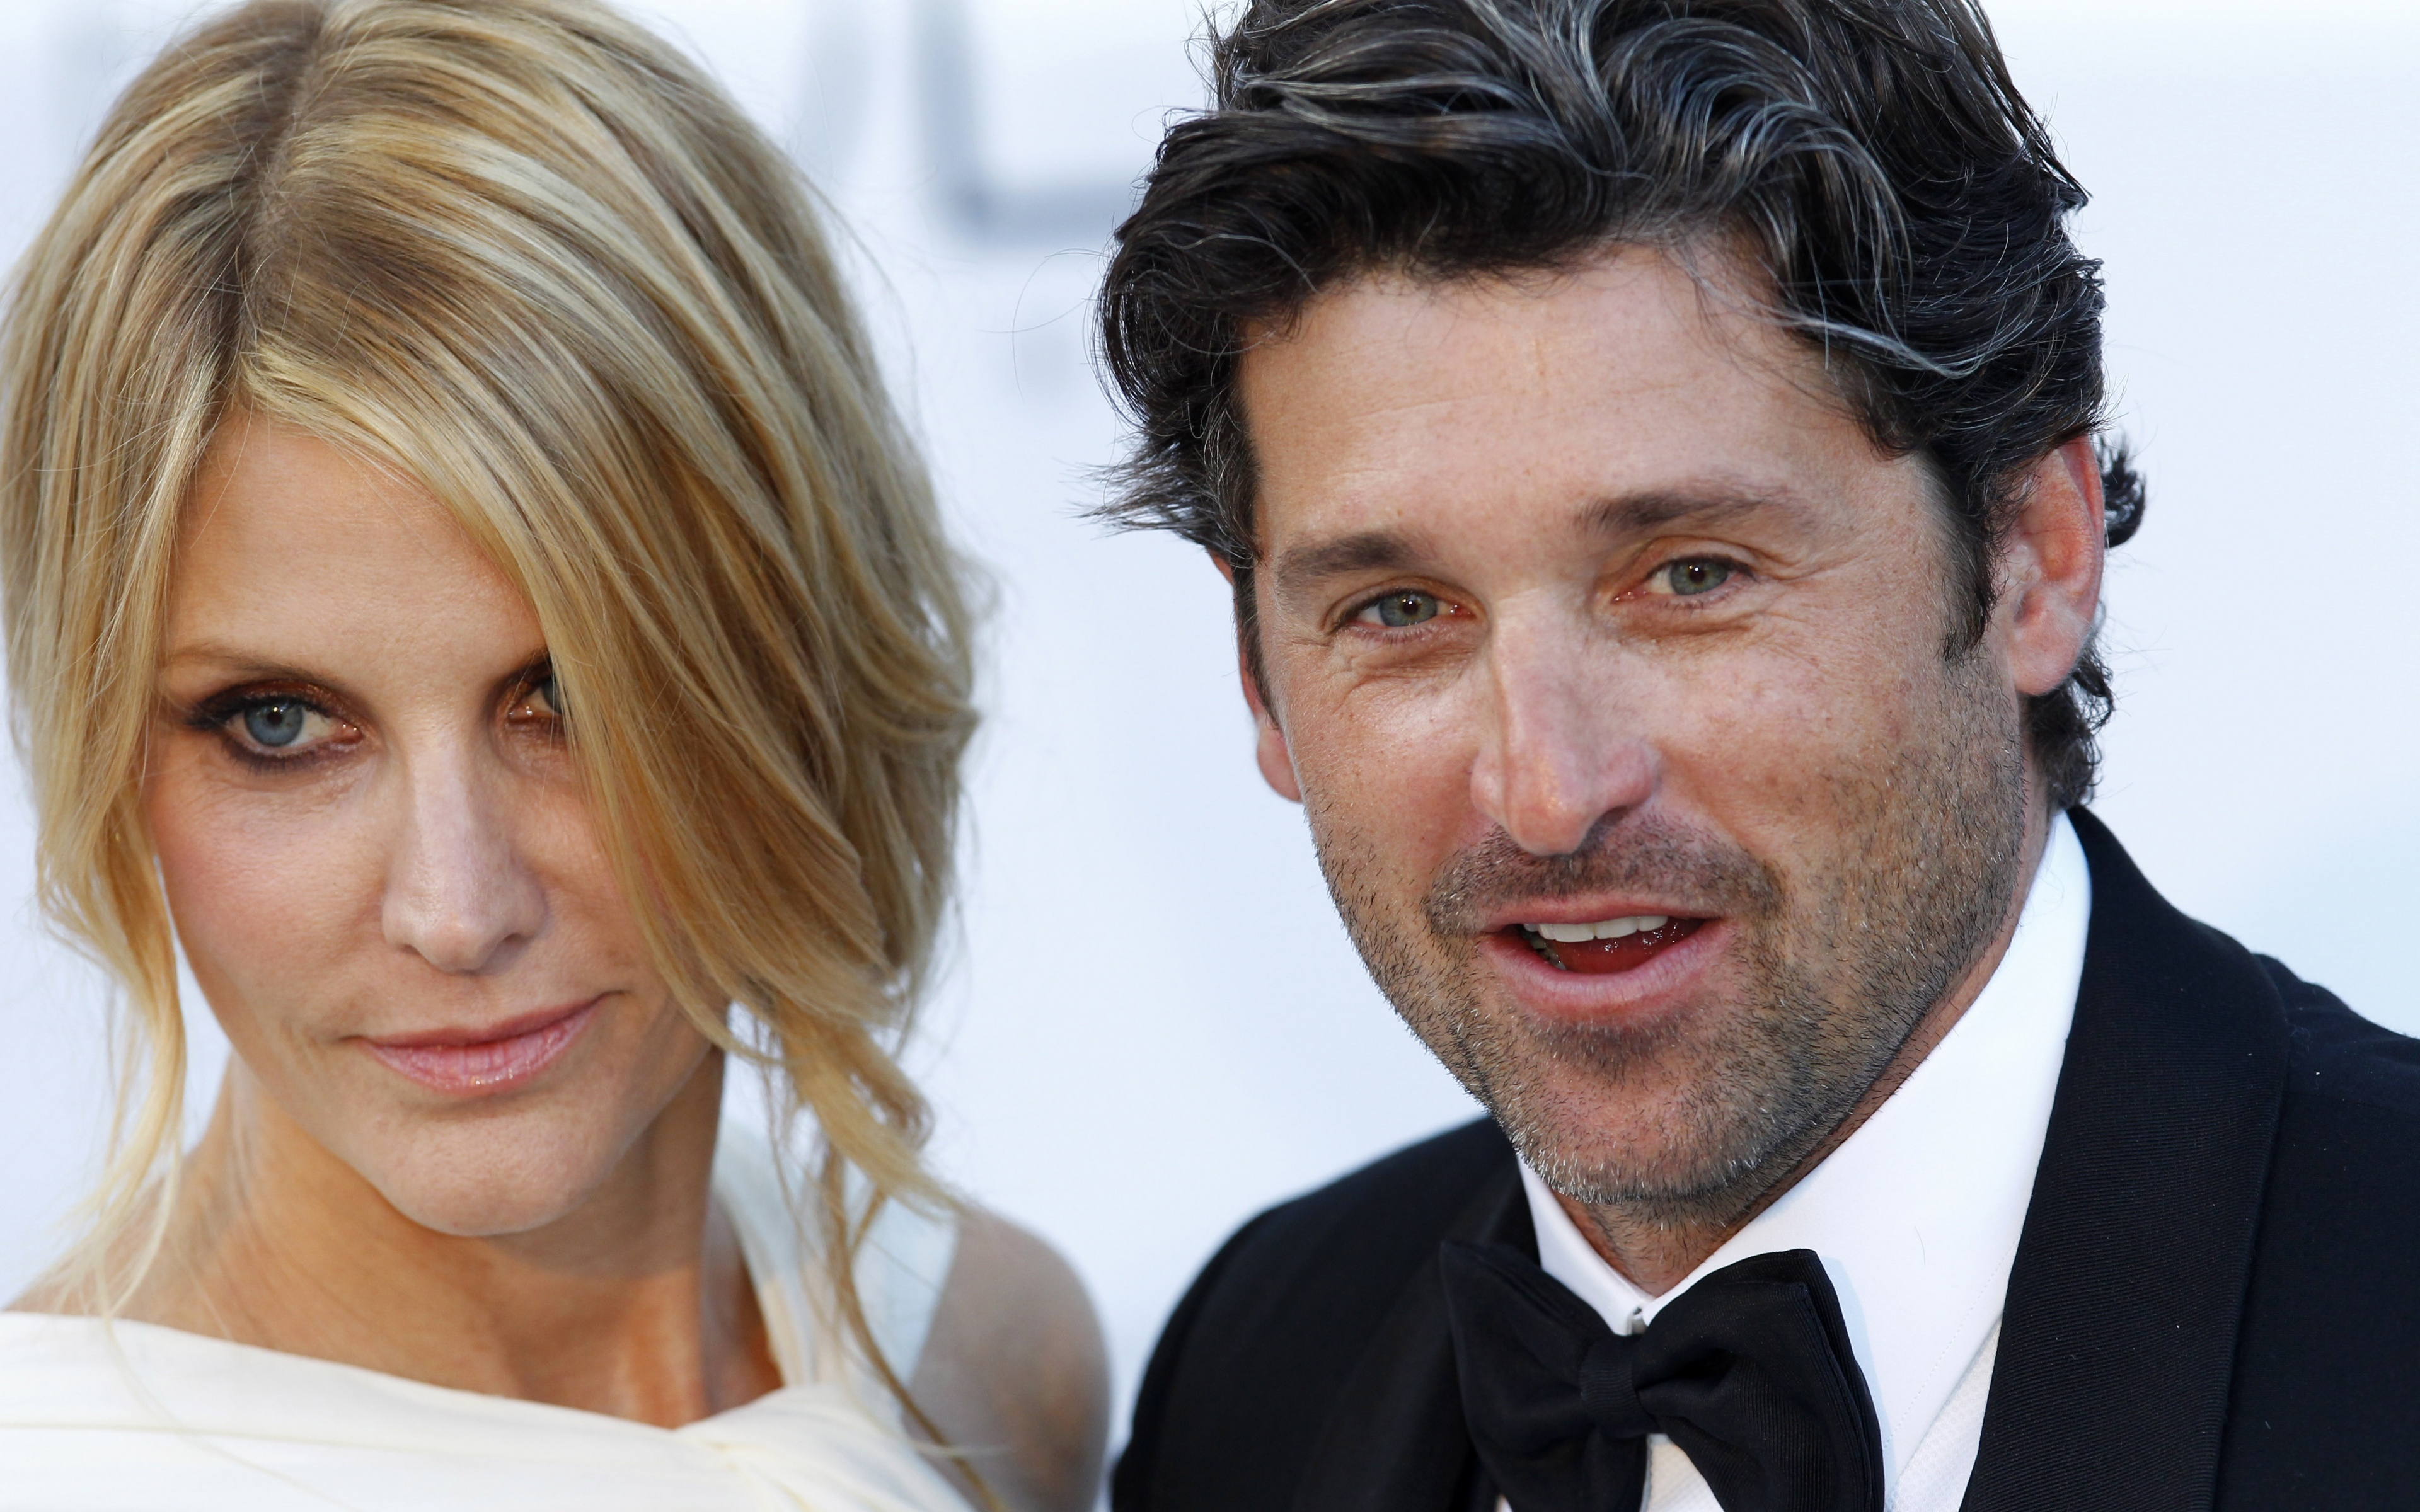 Dr McDreamy is staying married! Patrick Dempsey calls off divorce